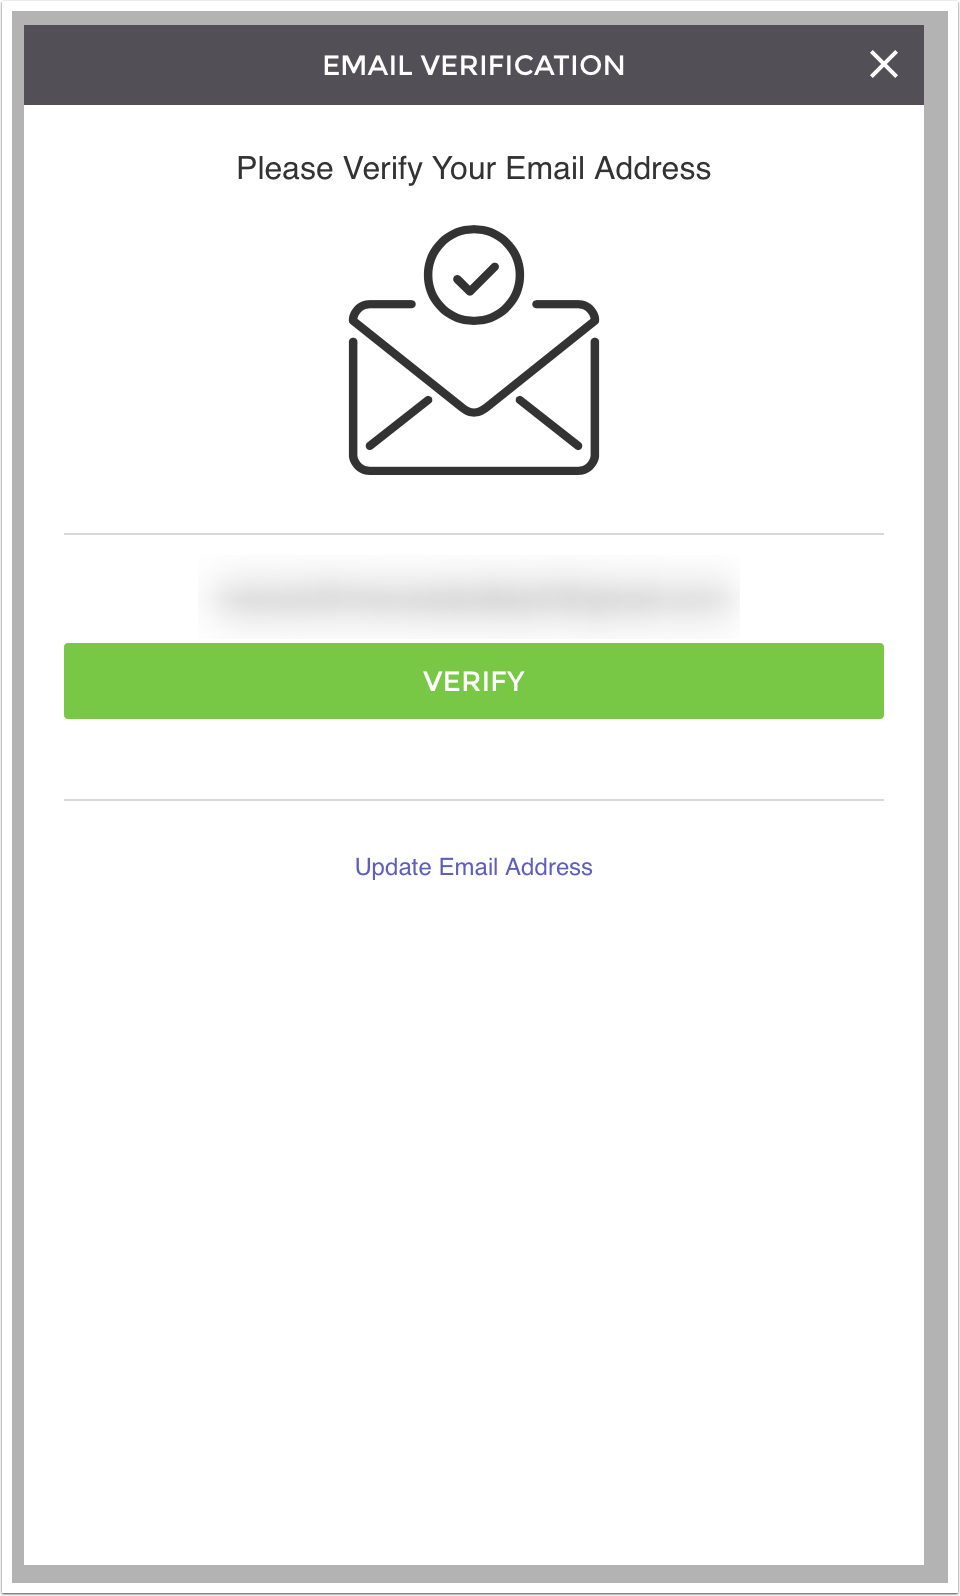 verify-your-email.png